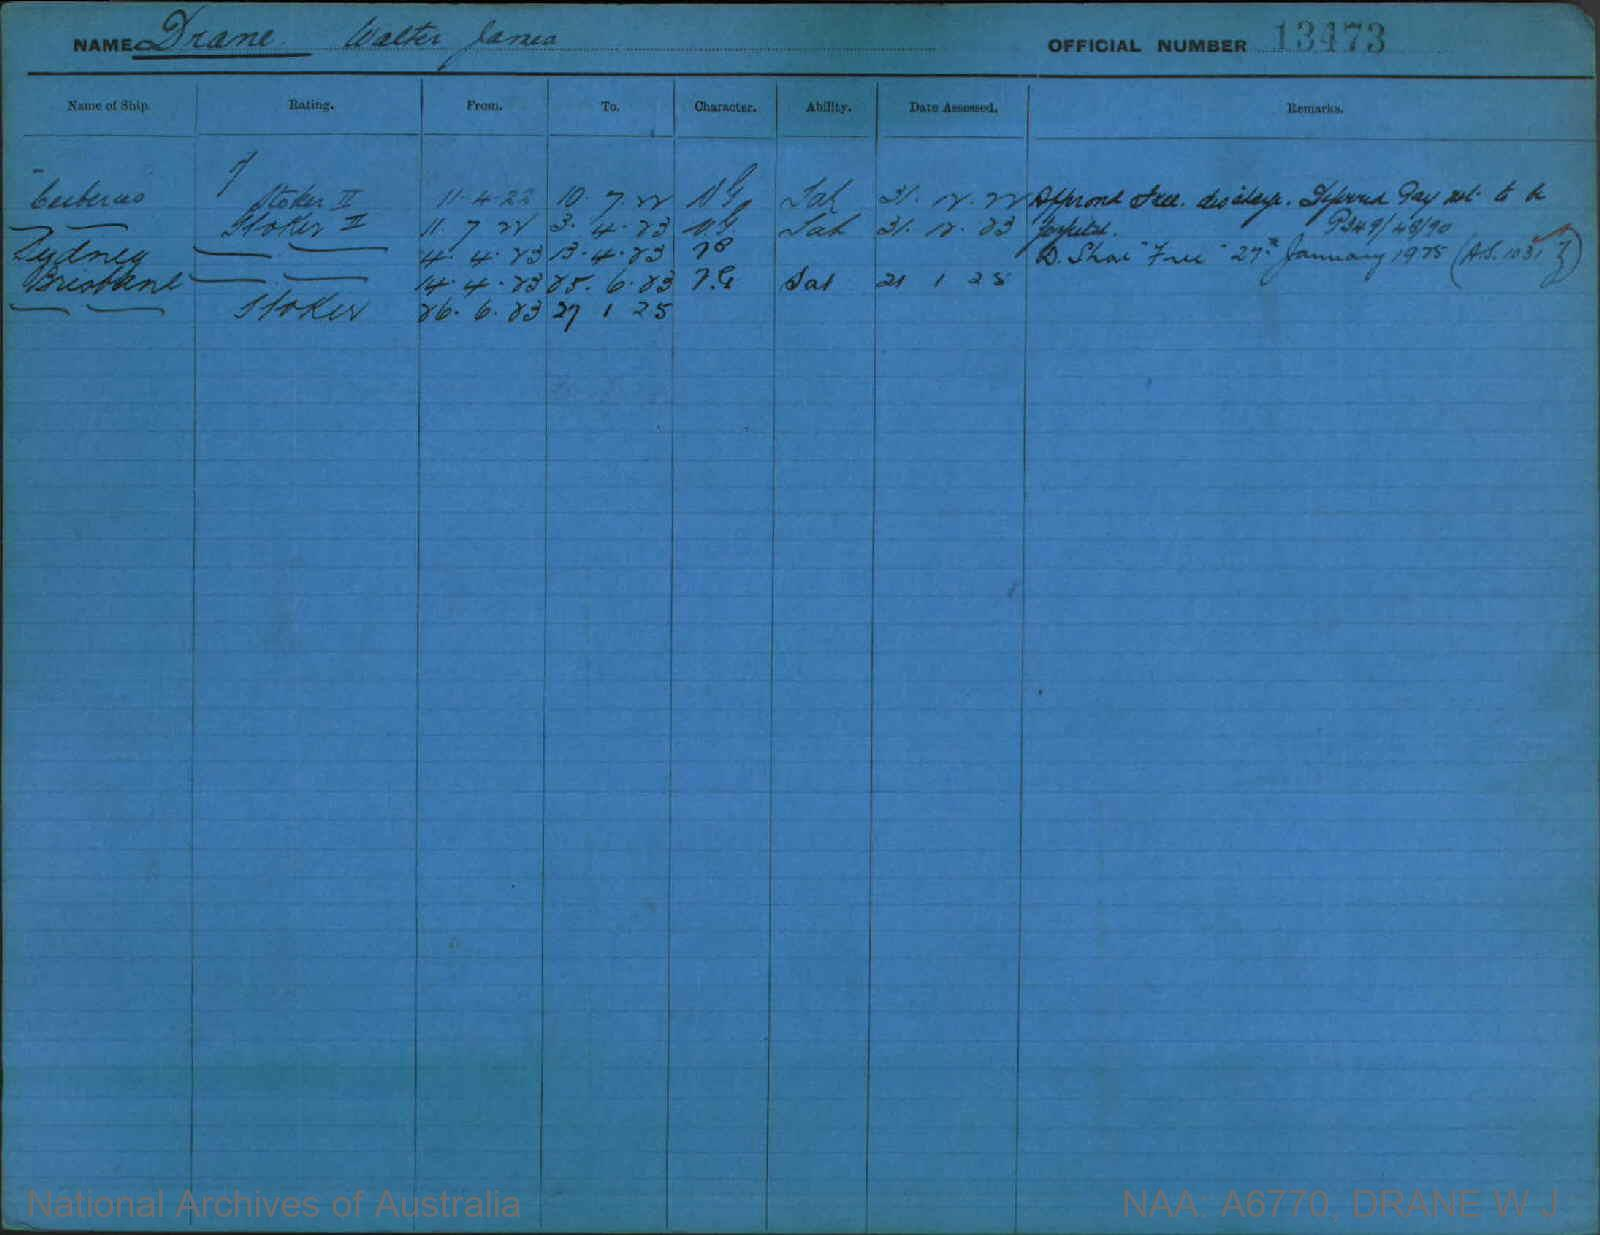 DRANE WALTER JAMES : Service Number - 13473 : Date of birth - 22 Mar 1904 : Place of birth - CALLIGNEE VIC : Place of enlistment - MELBOURNE : Next of Kin - BRENNAN M